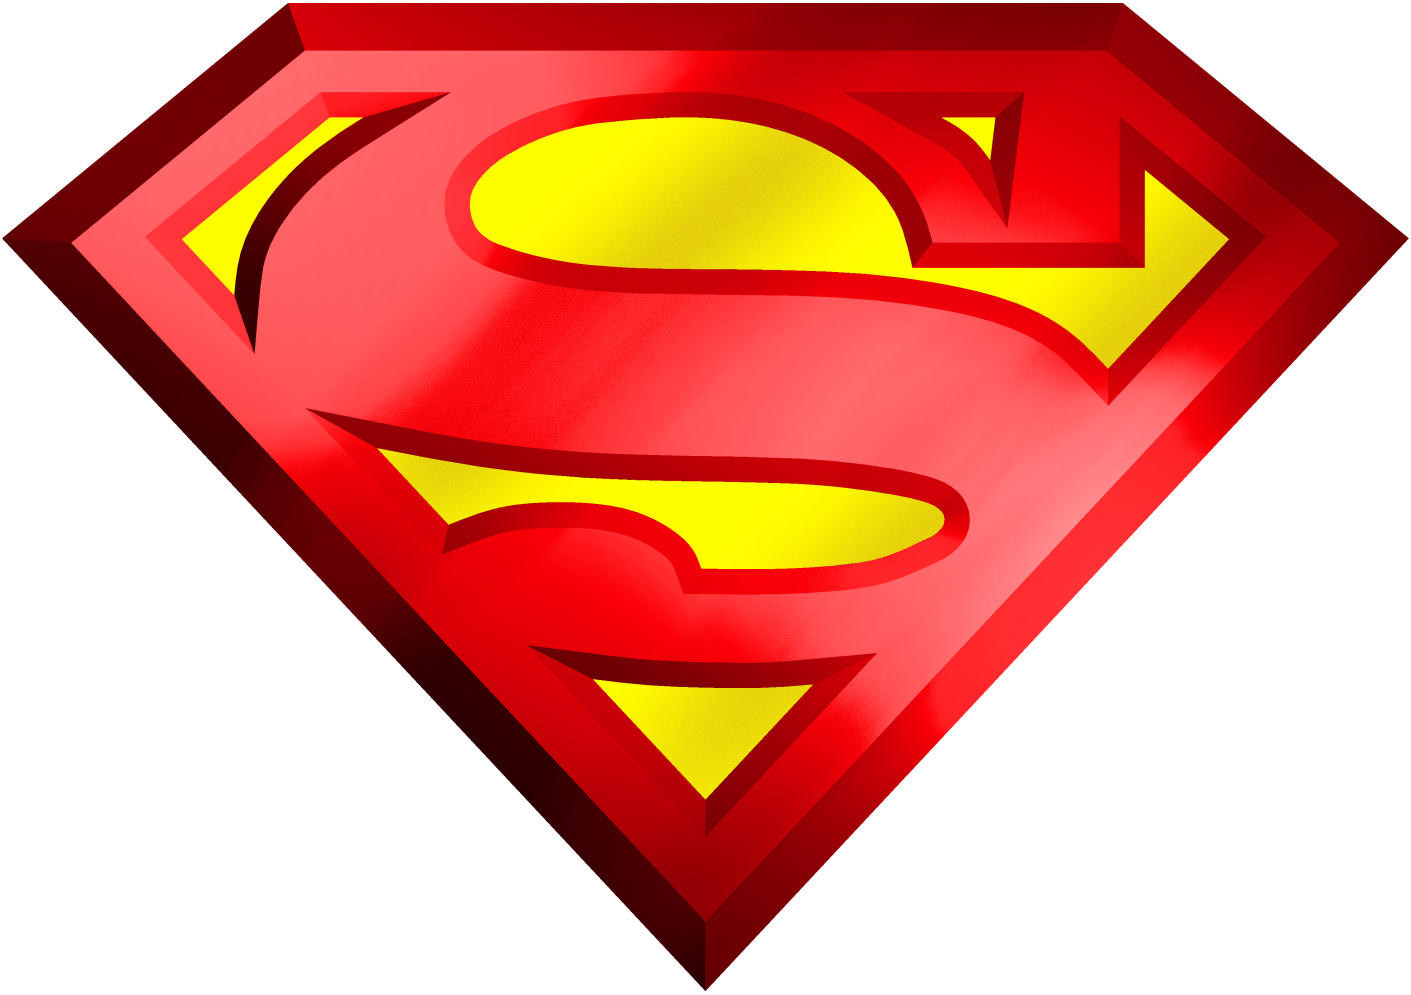 Free Download Of Superman Icon Clipart #19787.